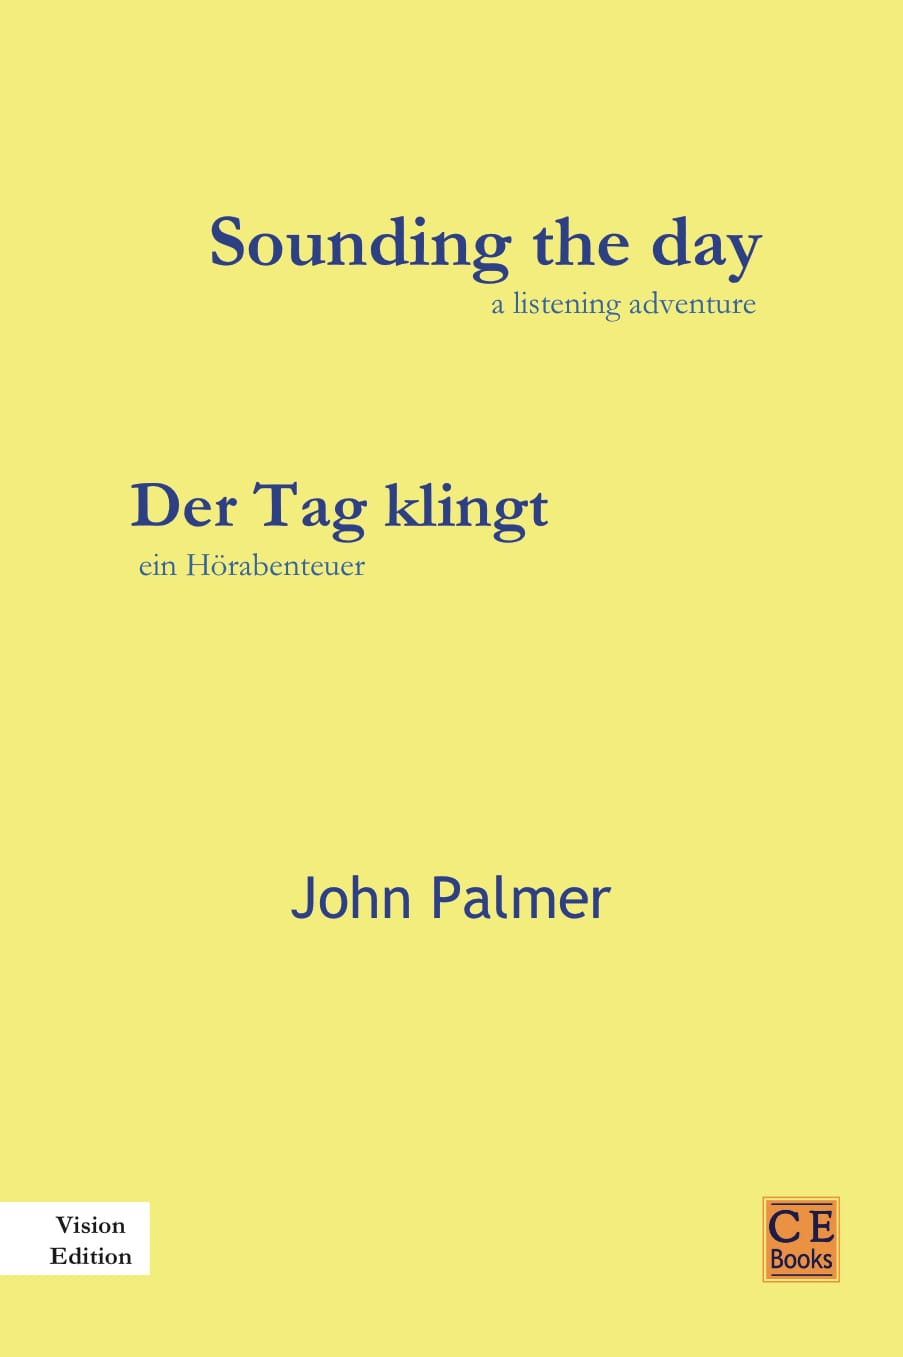 John Palmer: Sounding the day / Der Tag klingt a listening adventure/ein Hörabenteuer